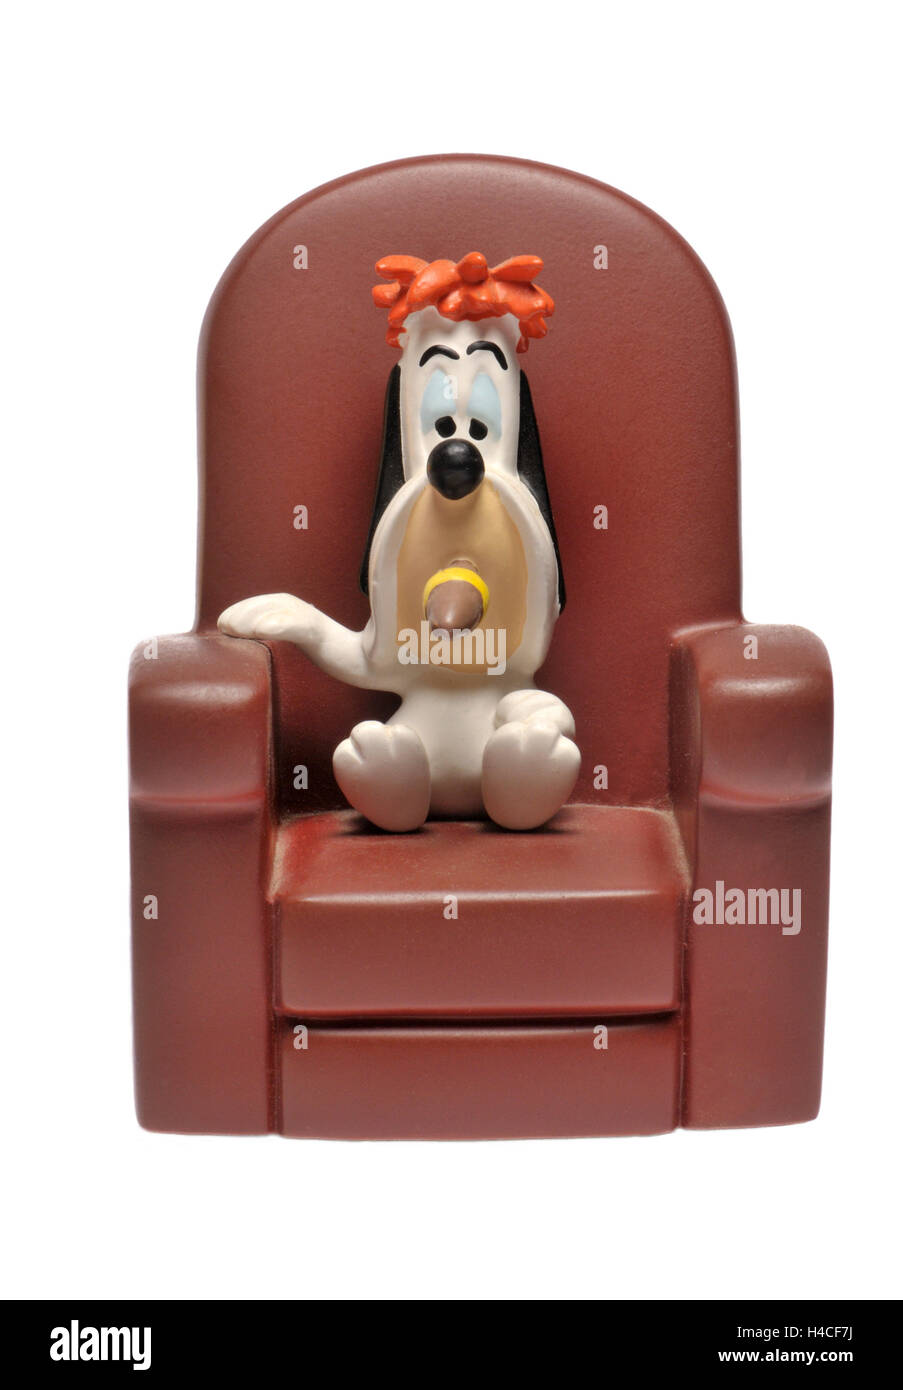 Cartoon character figurine - Droopy (MGM) sitting in an armchair, smoking A CIGAR - Stock Image